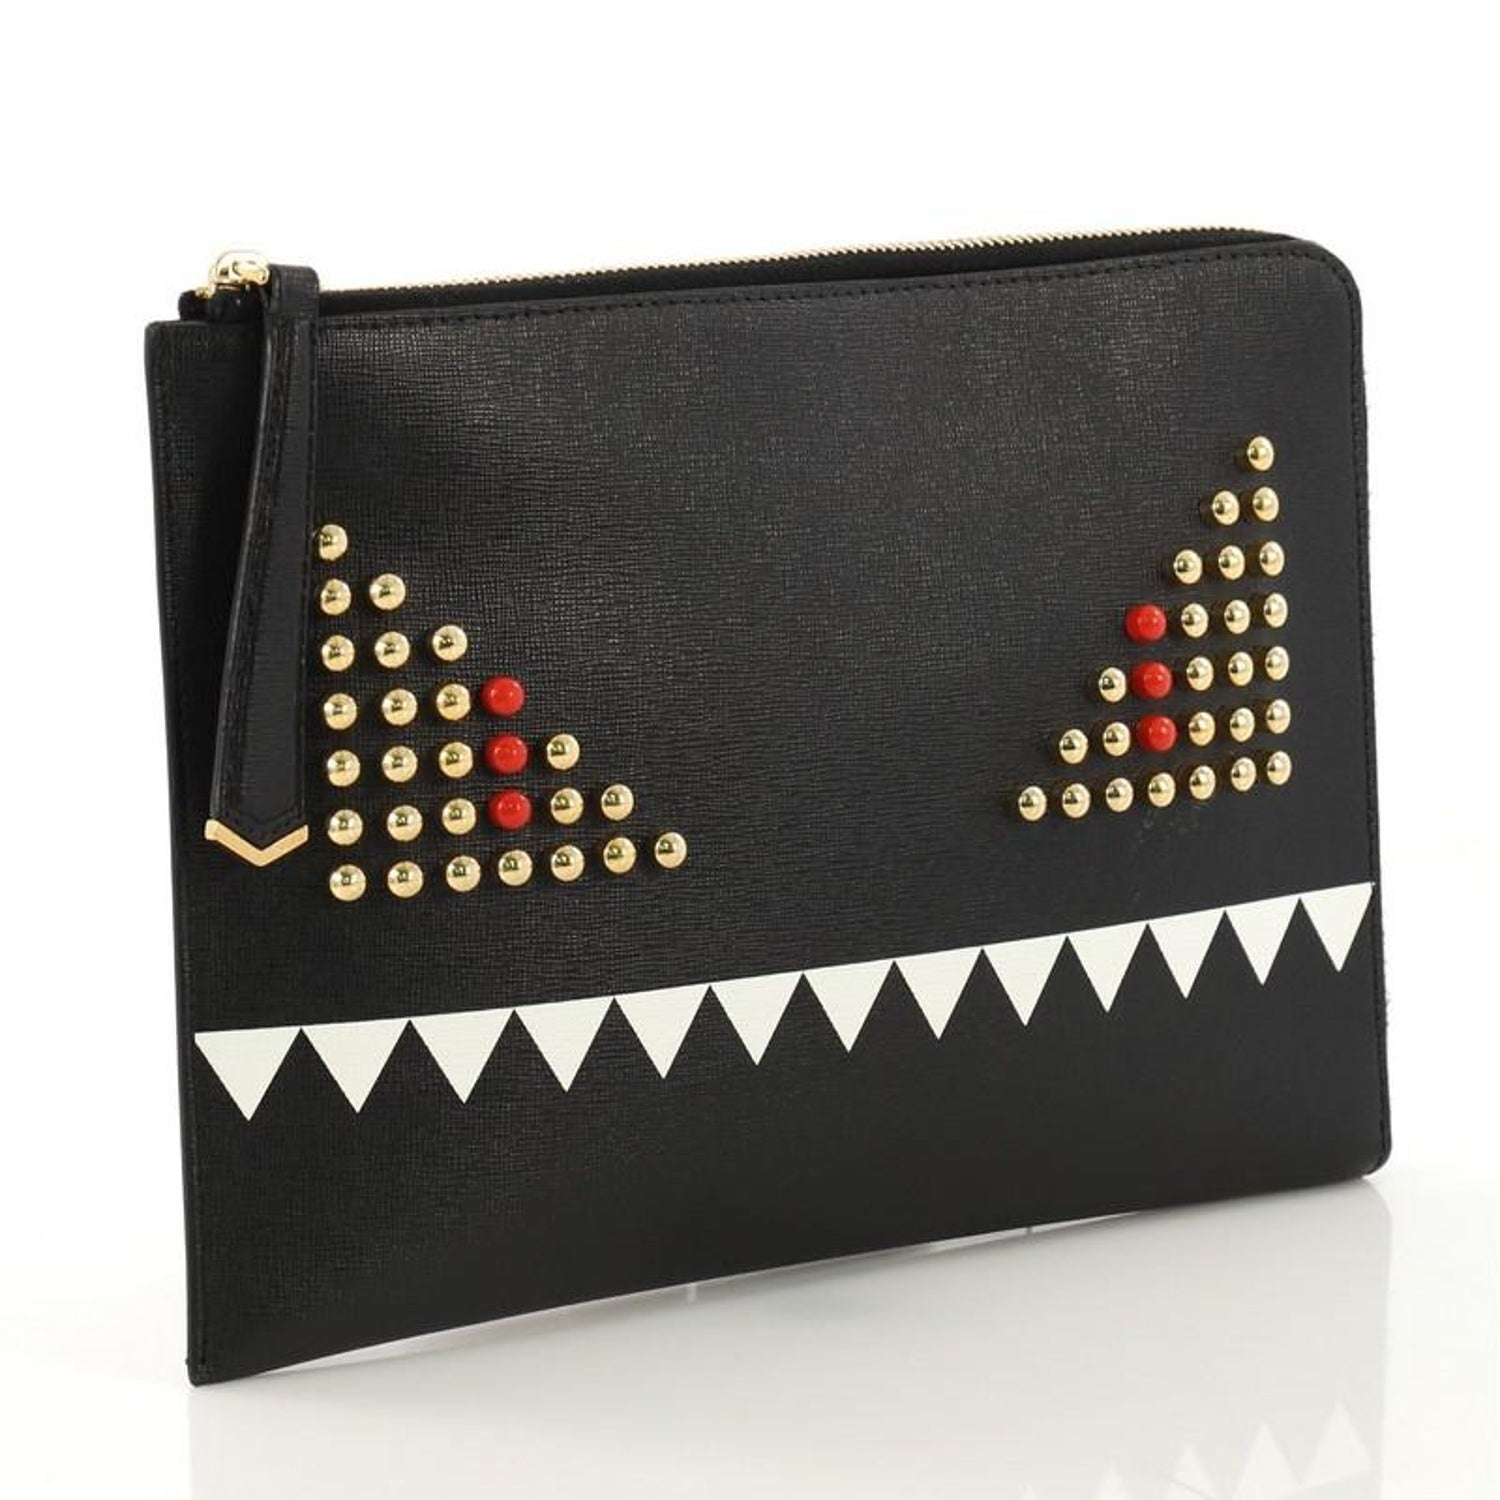 5871cee86e Fendi Monster Pouch Studded Leather Small